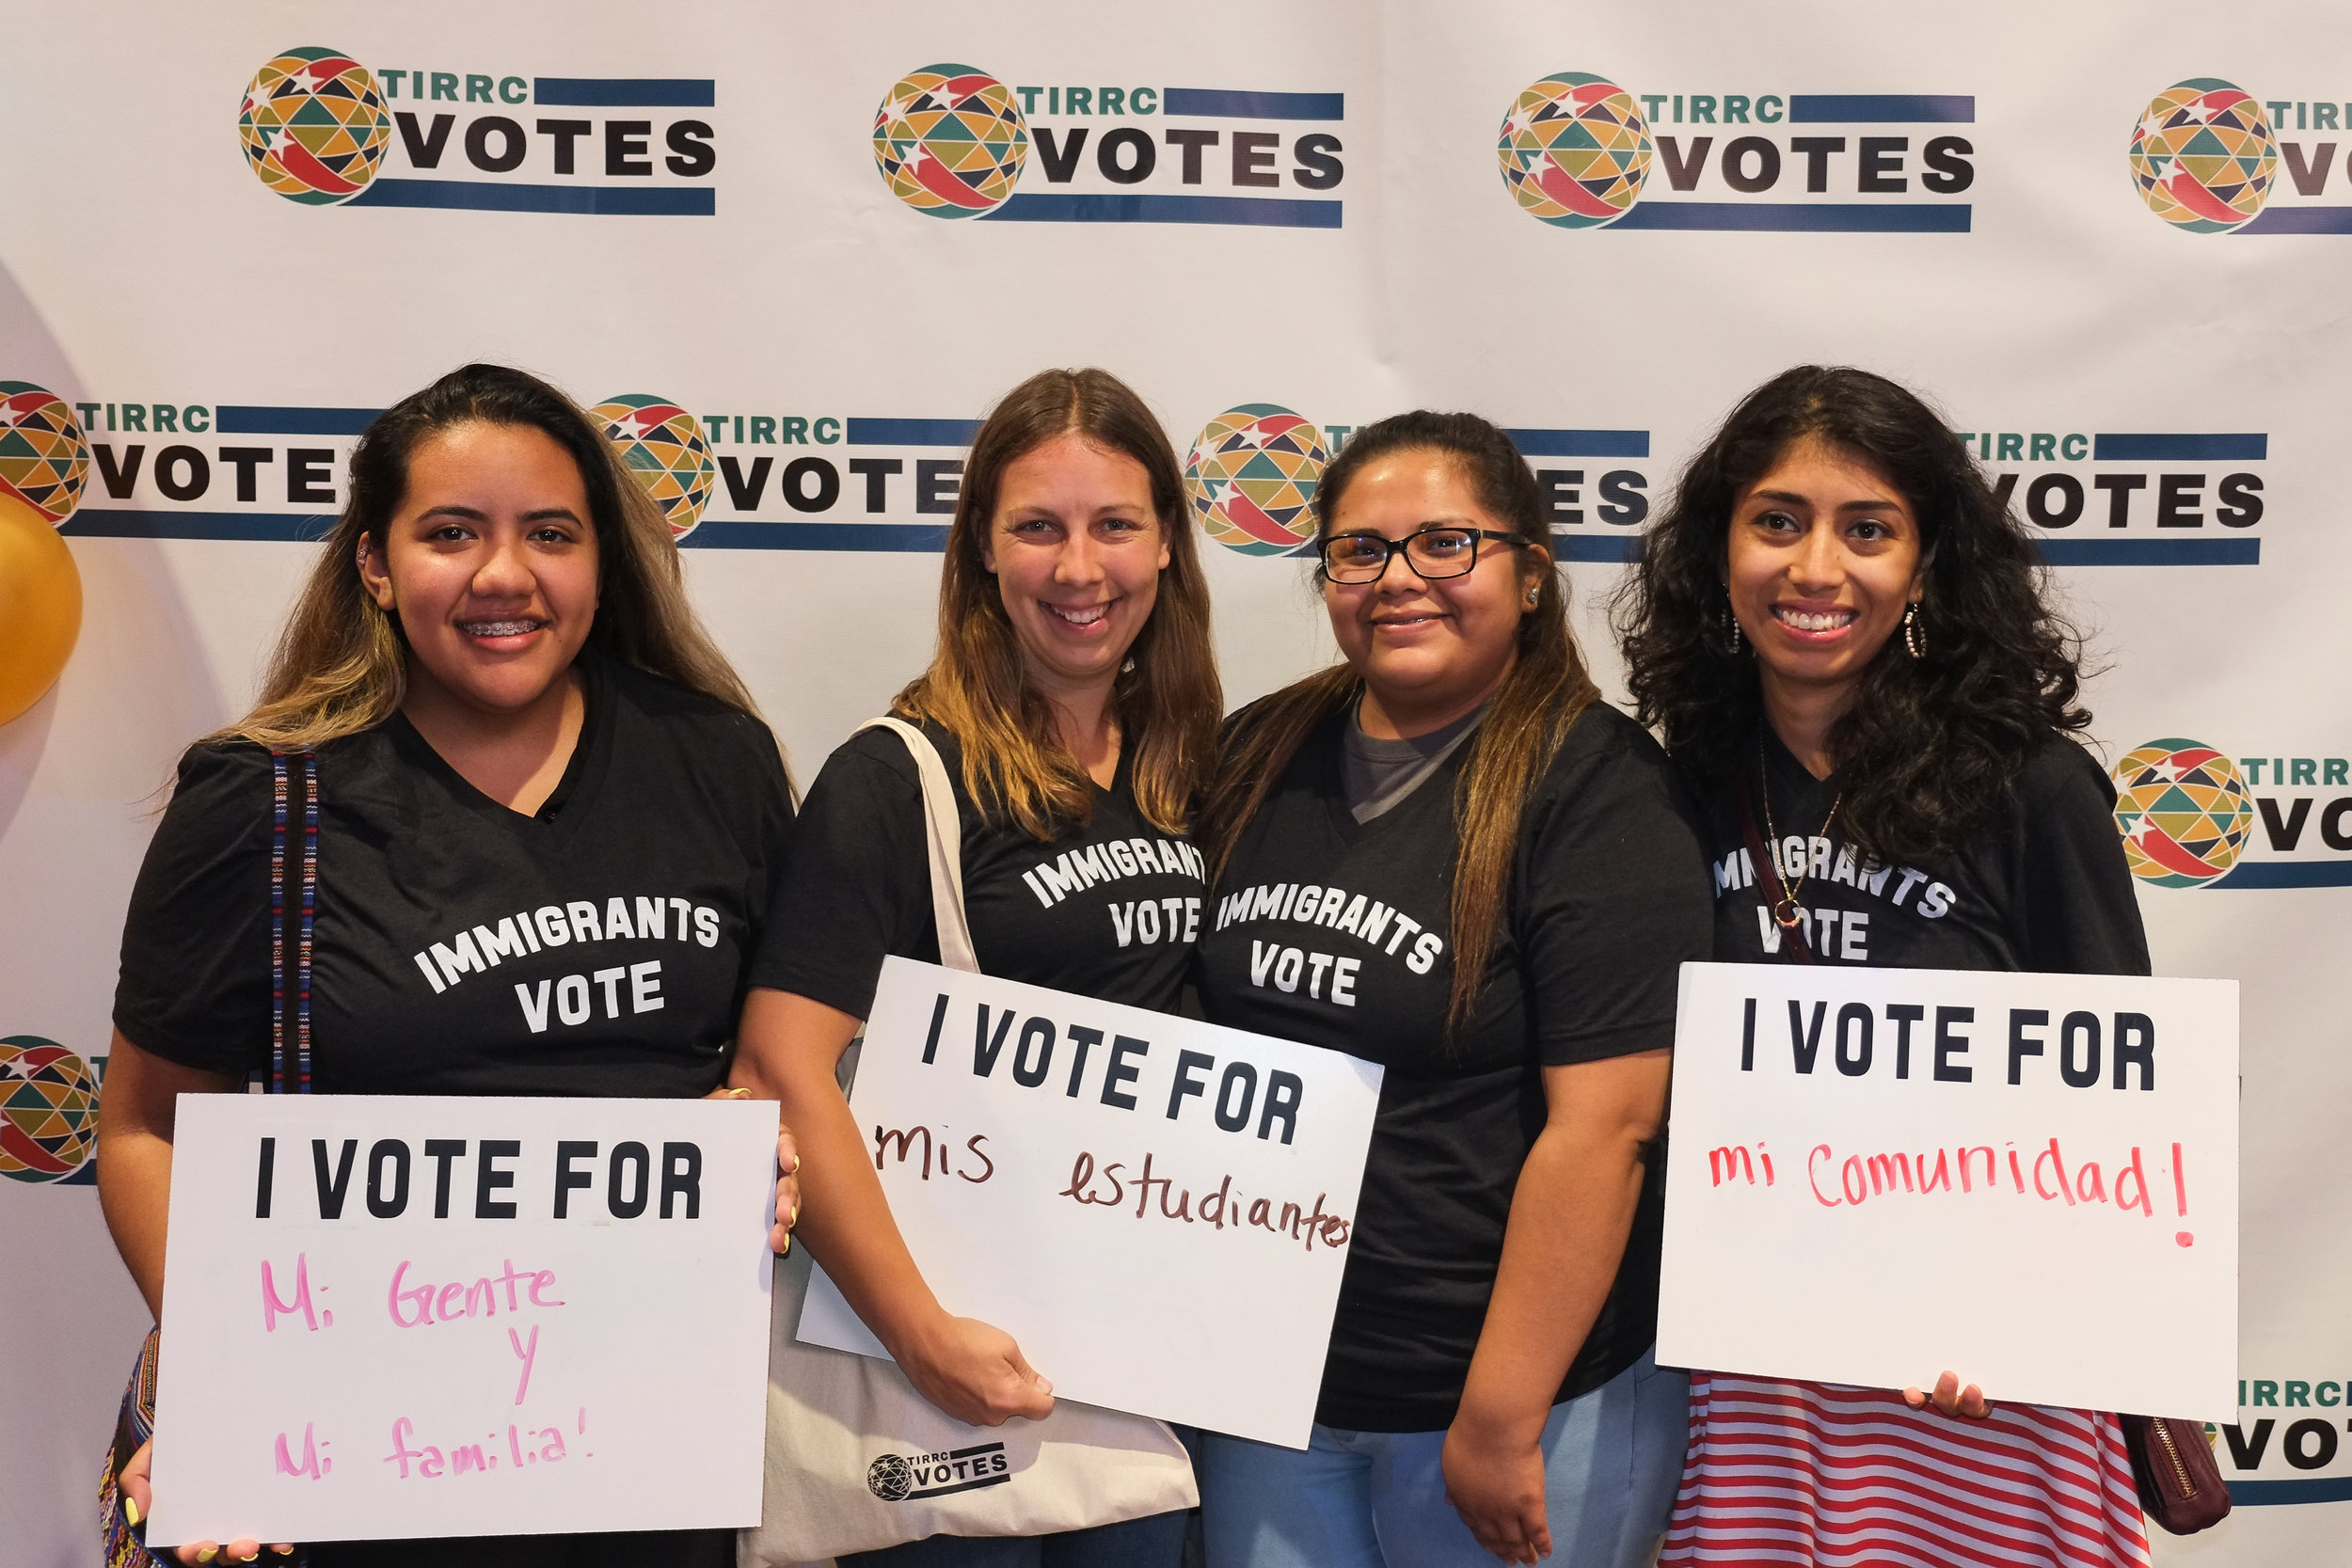 TIRRCVotes-PhotoBooth-29.jpg